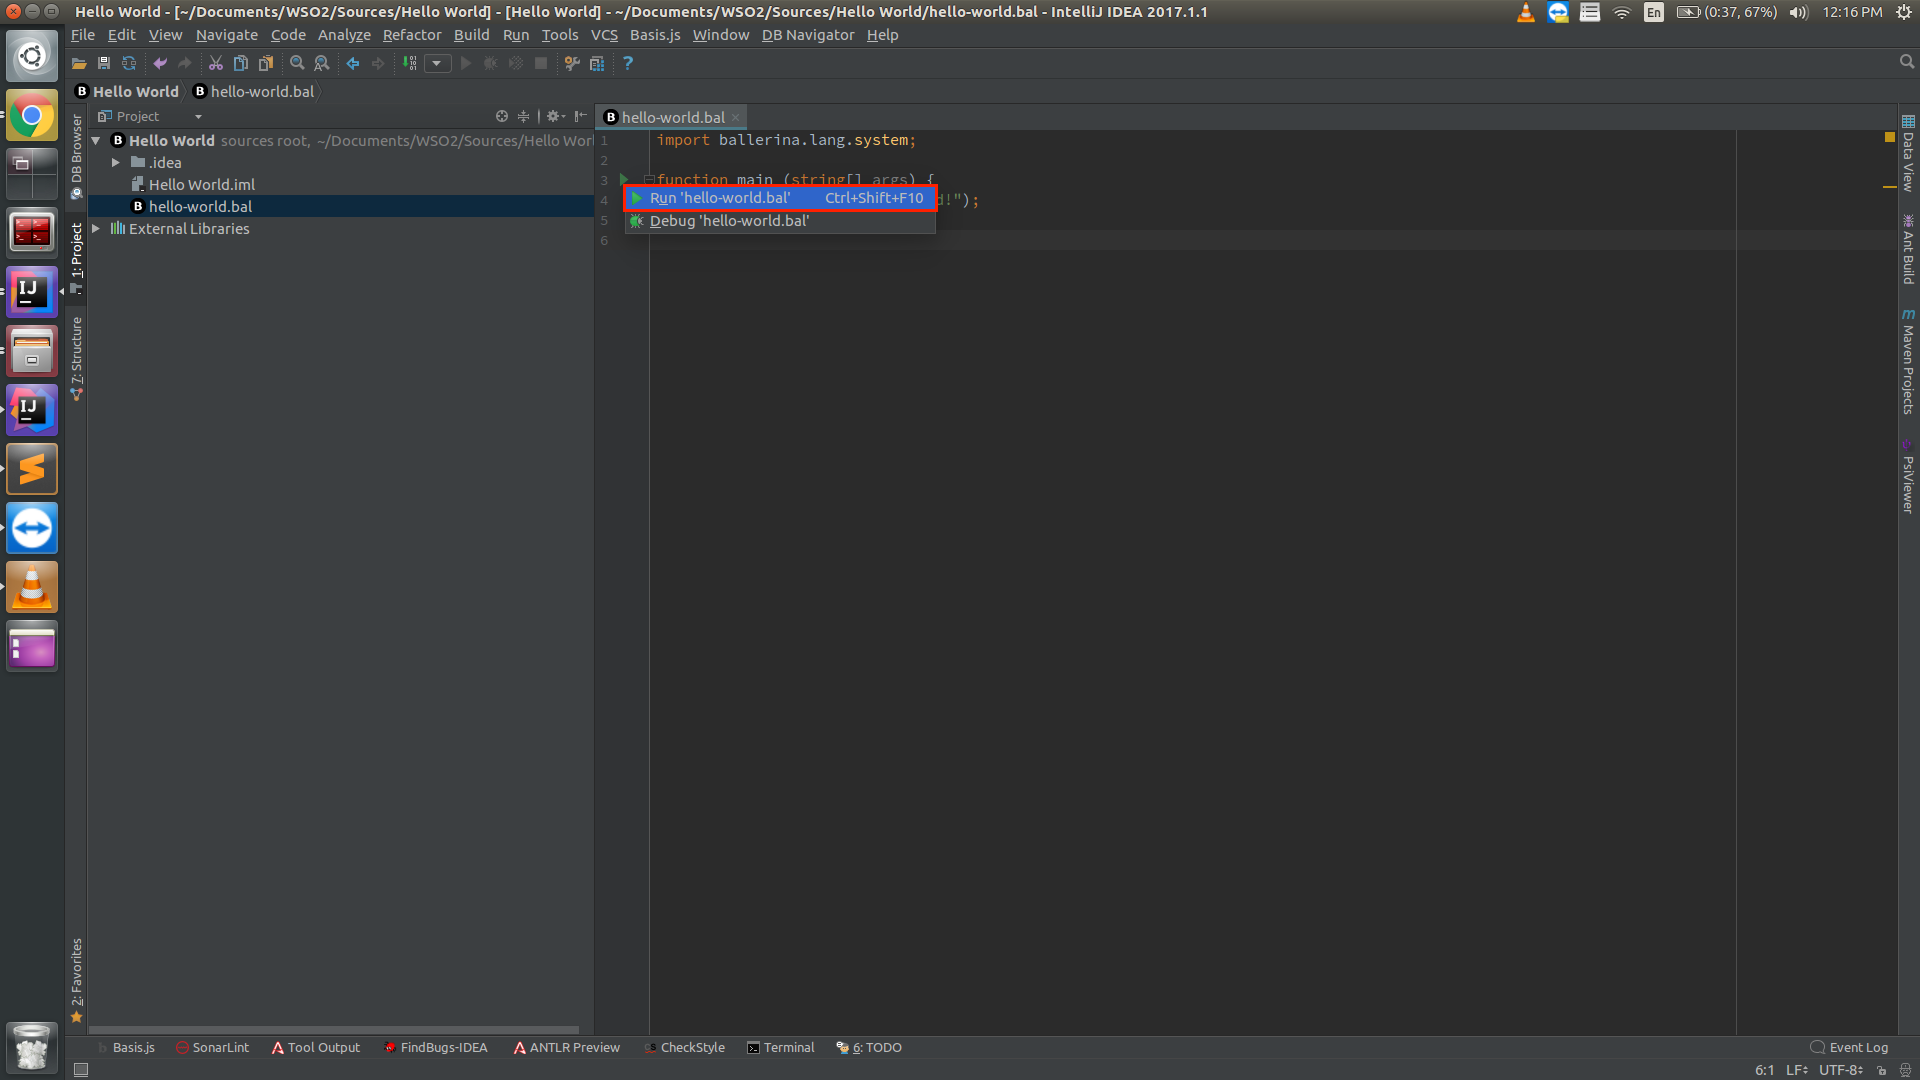 Using The Features Of The Intellij Plugin